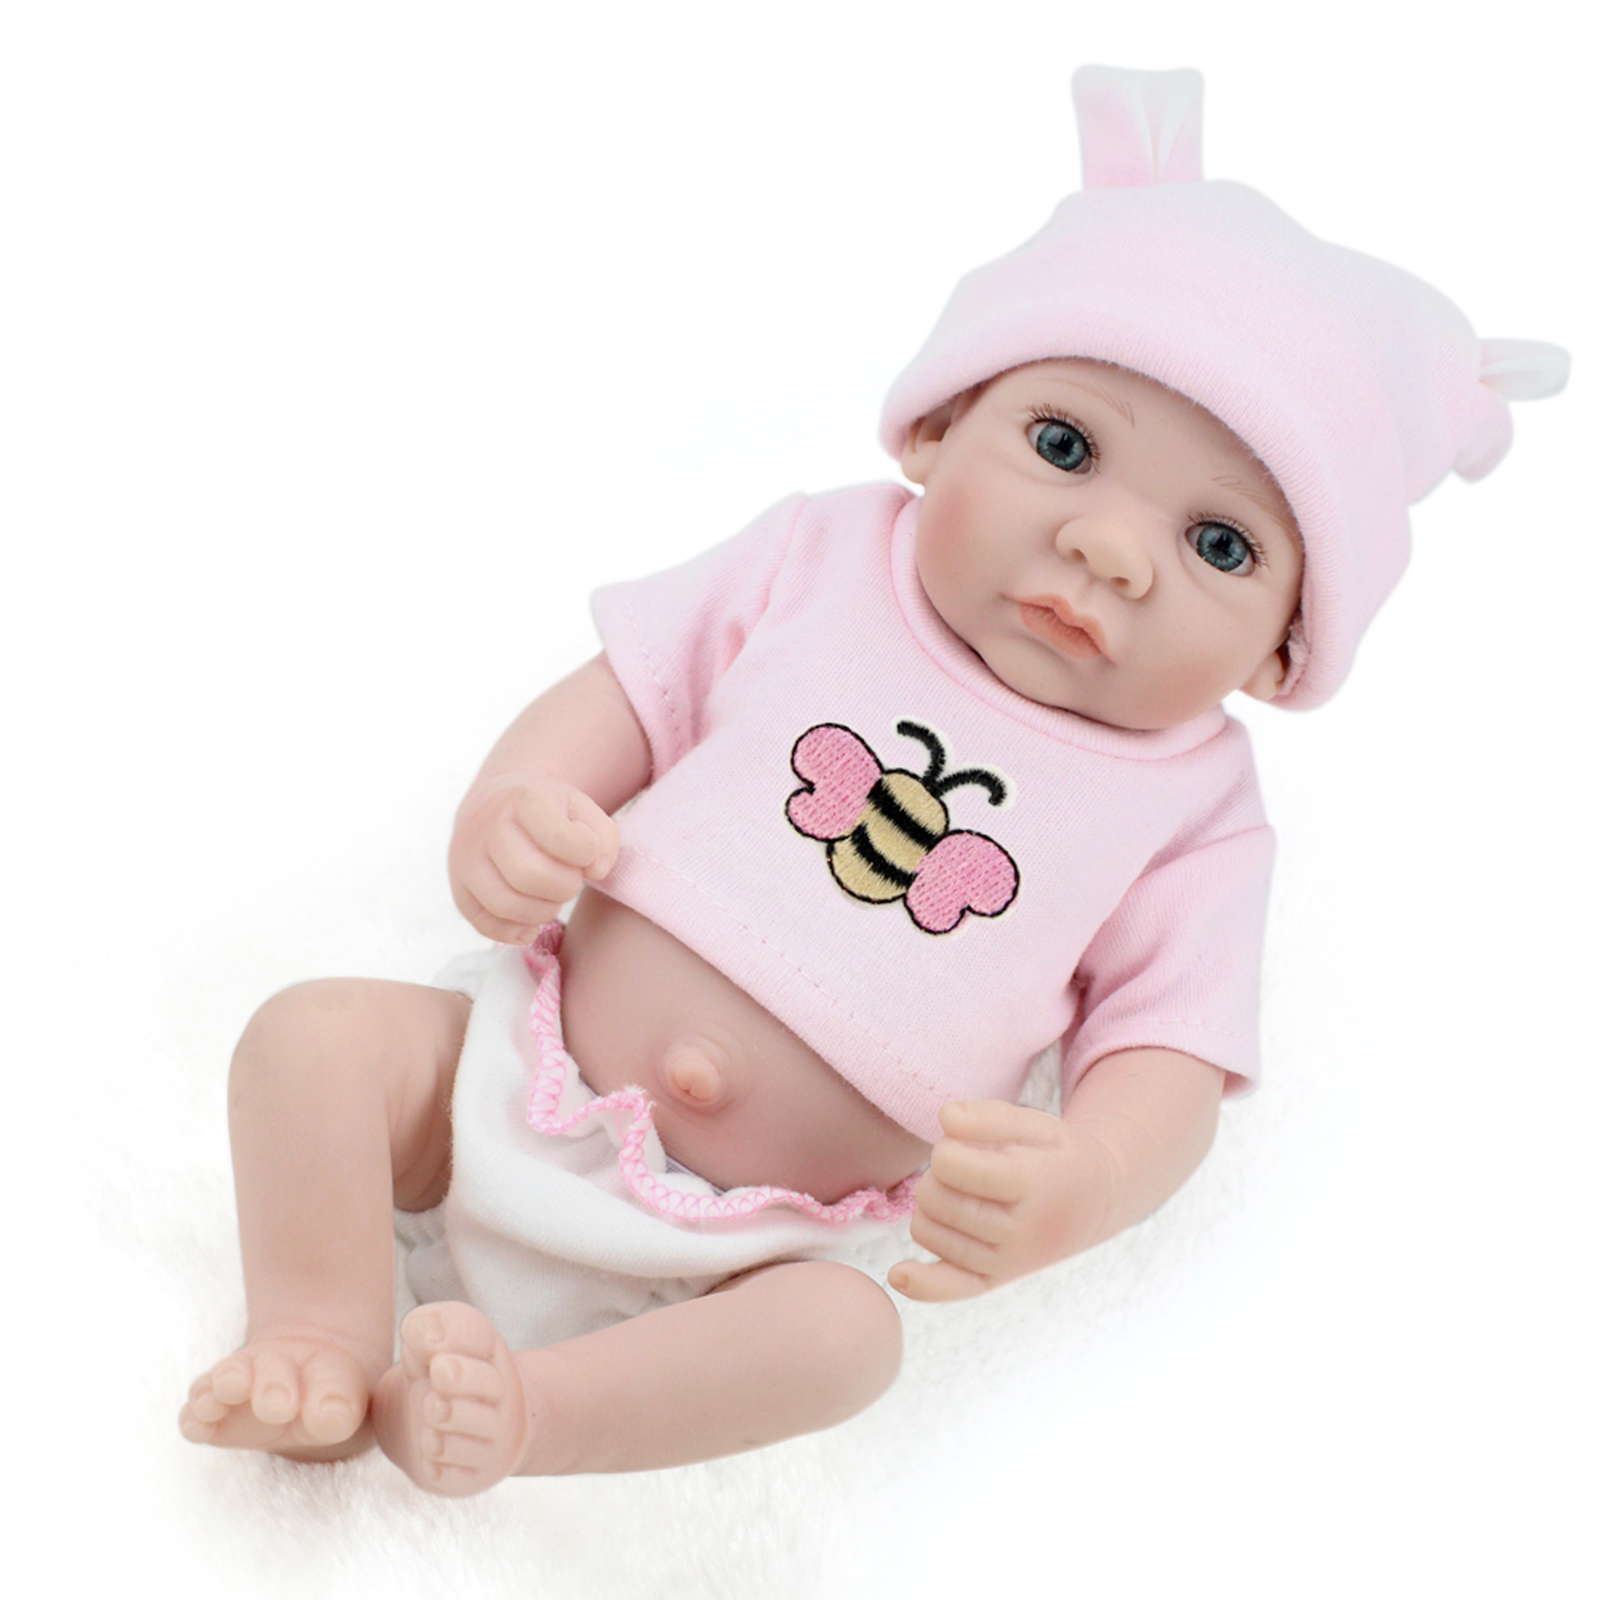 """10"""" Reborn Baby Realike Doll Handmade Lifelike Silicone Vinyl Doll for Toddler Gifts"""